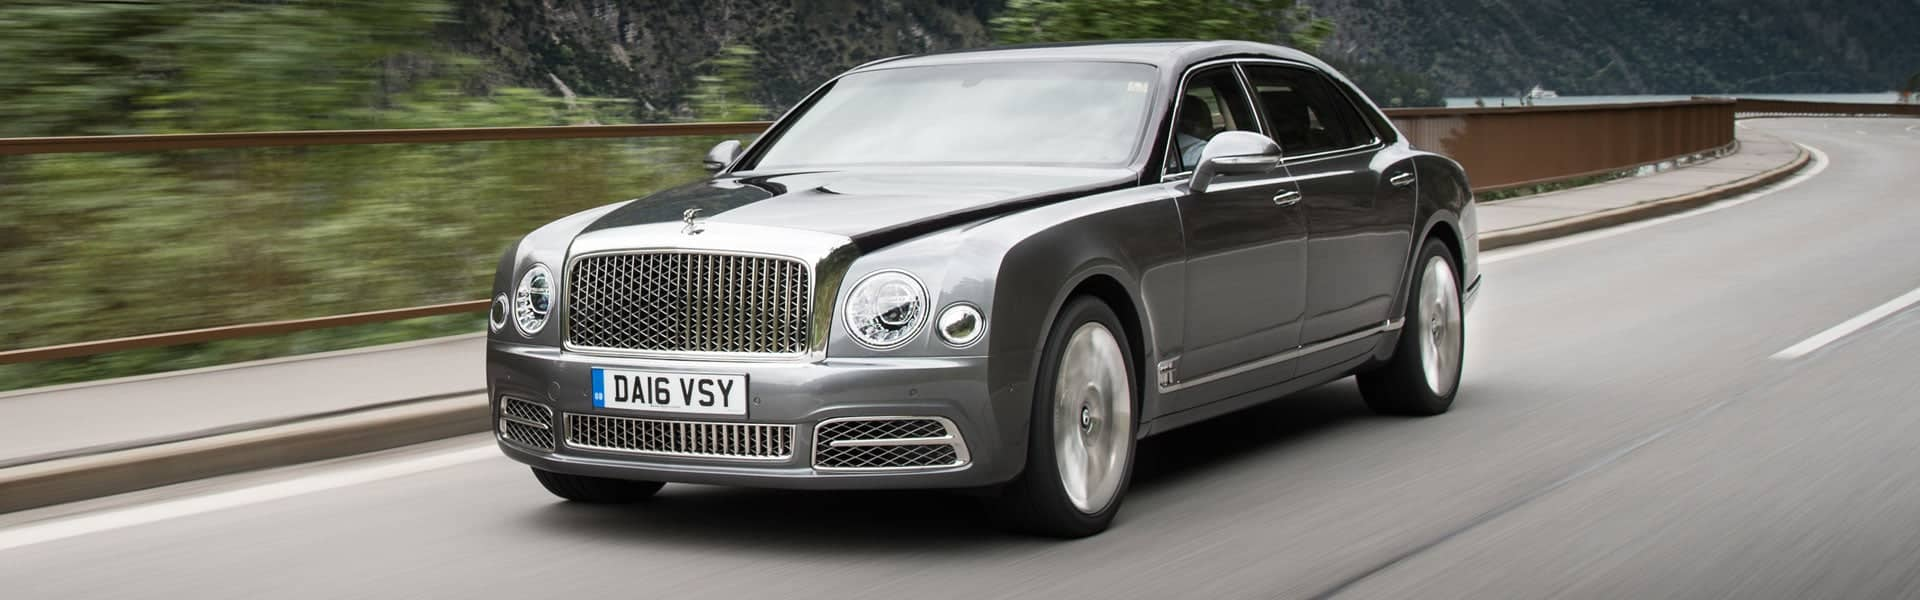 2020 Bentley Mulsanne Review